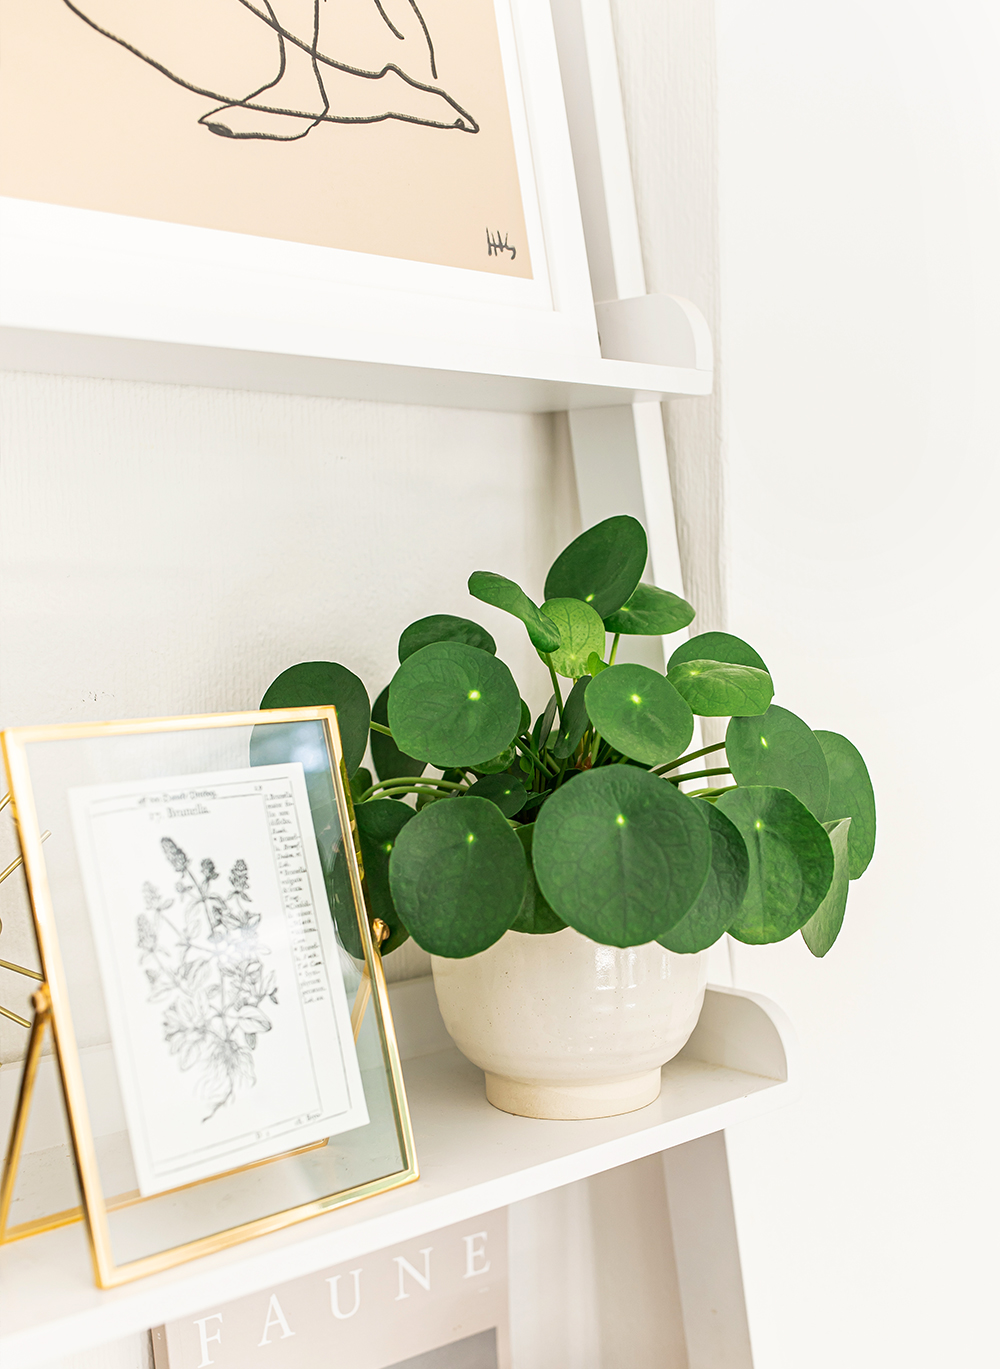 chinese-money-plant-Pilea-Peperomioides-Pancake-plant-kelseyinlondon-homewithkelsey-plant-guide-best-indoor-plants